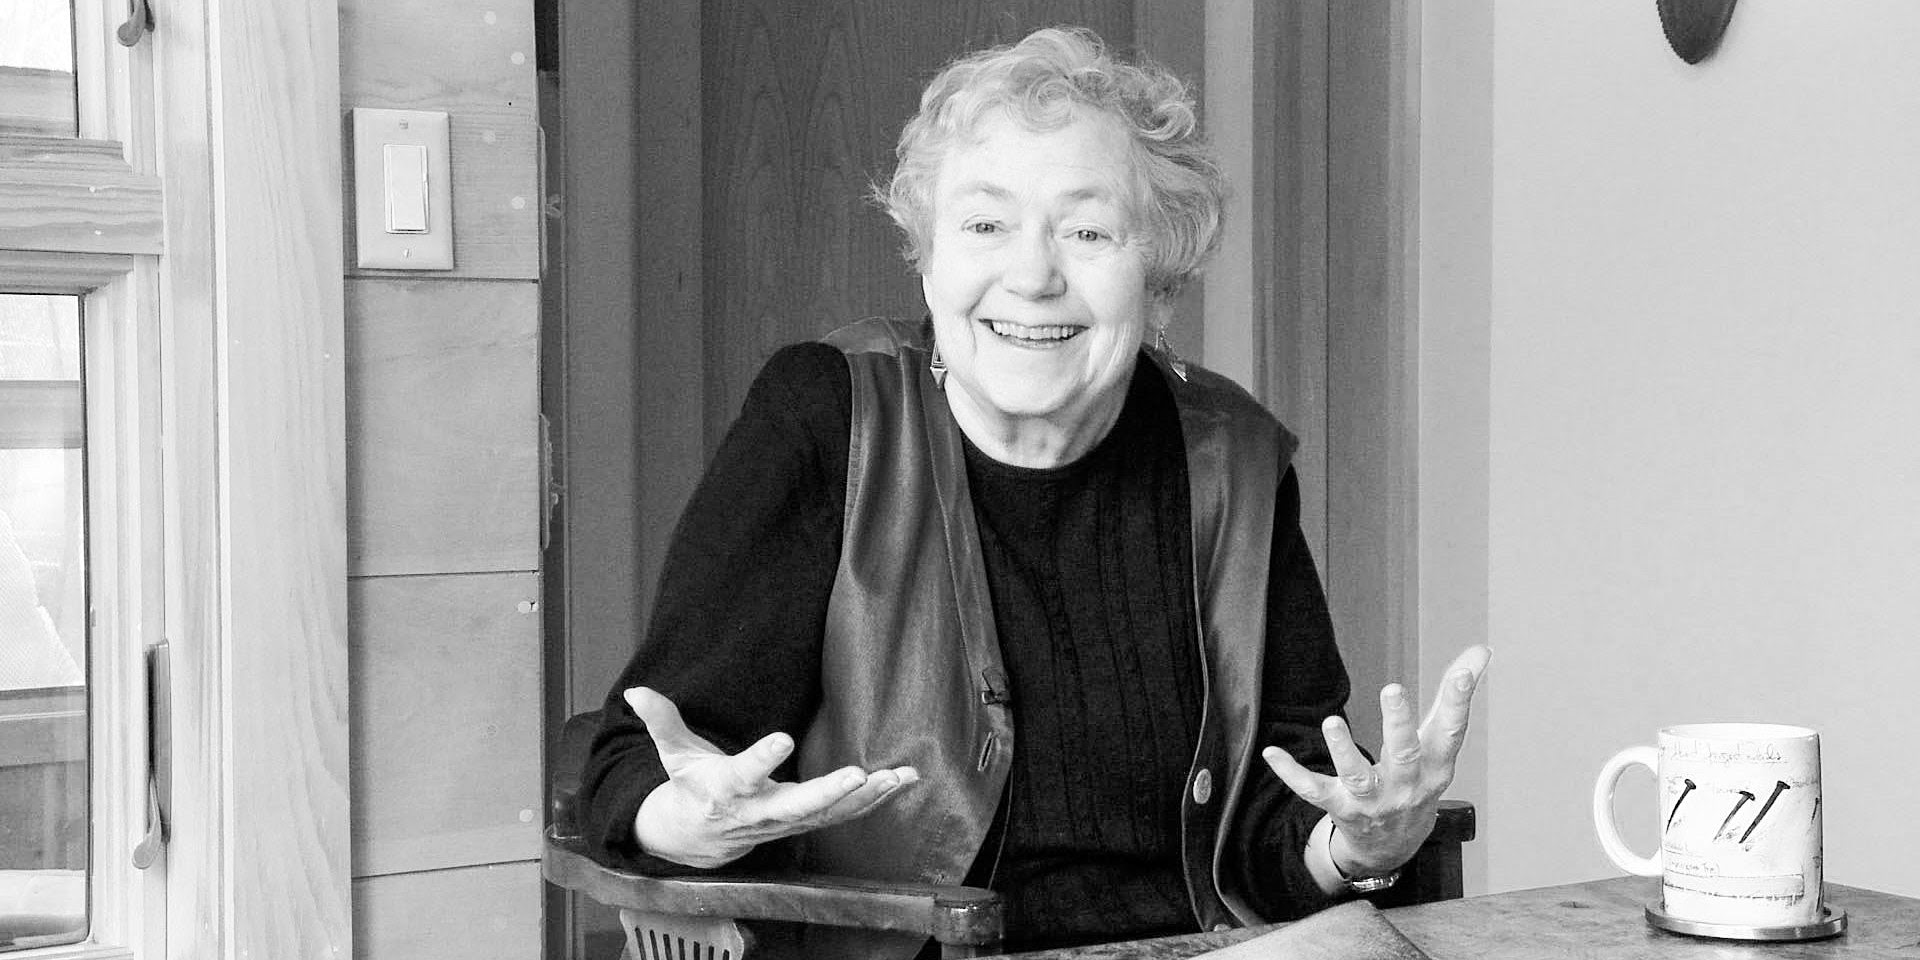 ASC Series #7: Partial Memories of Mary Catherine Bateson - Nora & Sevanne